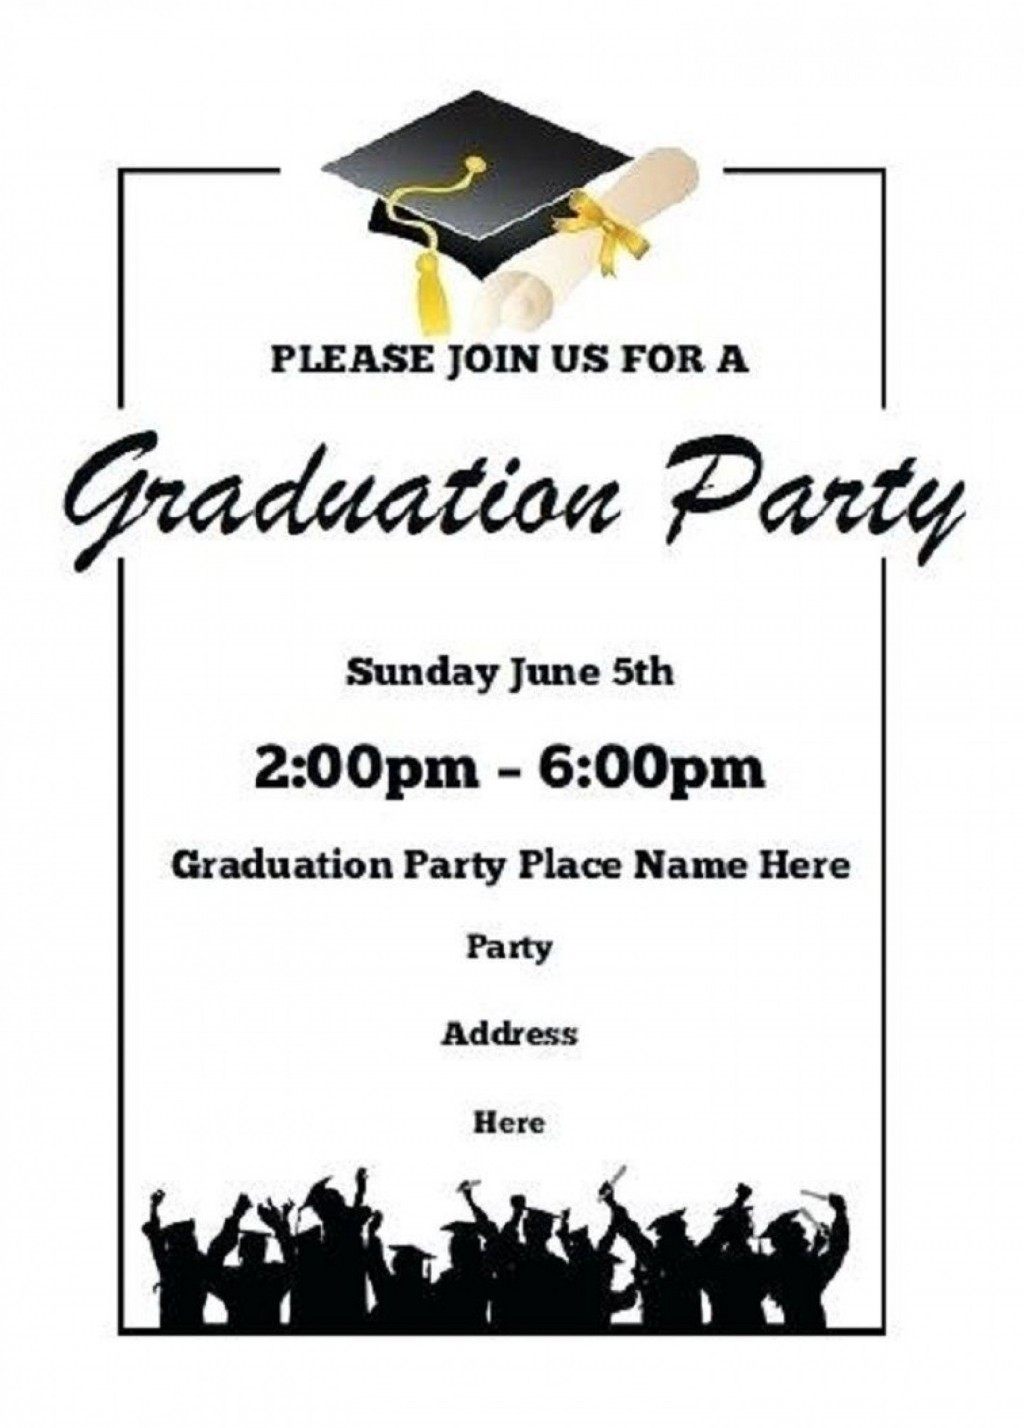 002 Singular Free Printable Graduation Invitation Template High Resolution  Party For WordLarge